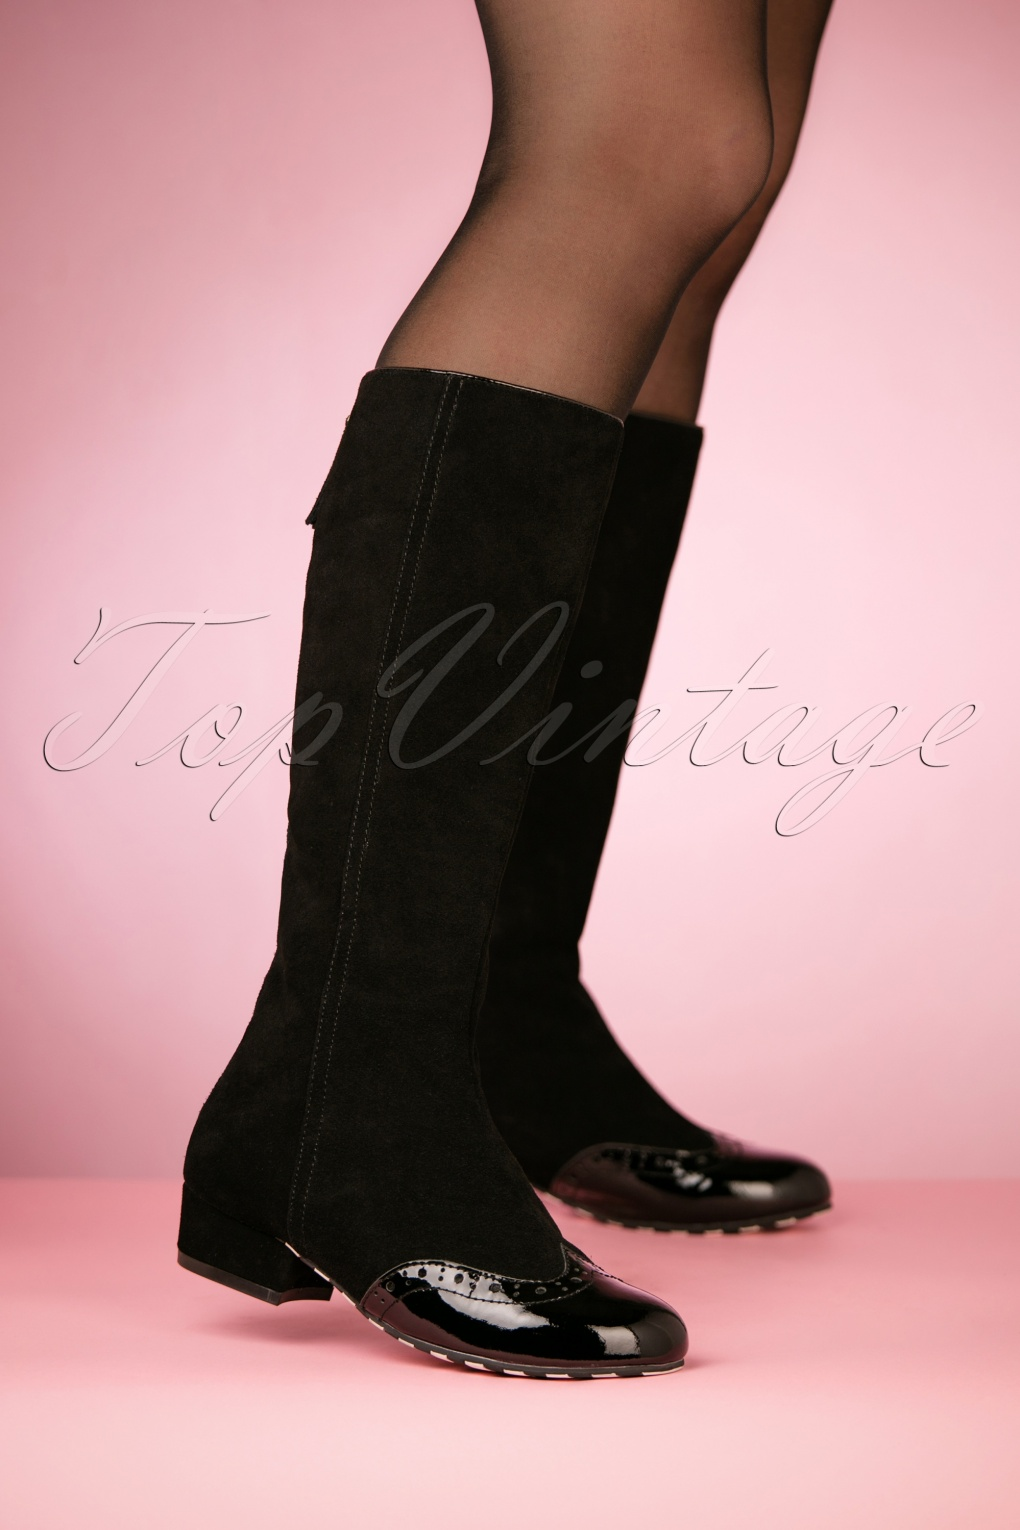 Vintage Style Shoes, Vintage Inspired Shoes 60s Alice Dreaming Suede Boots in Black £180.04 AT vintagedancer.com